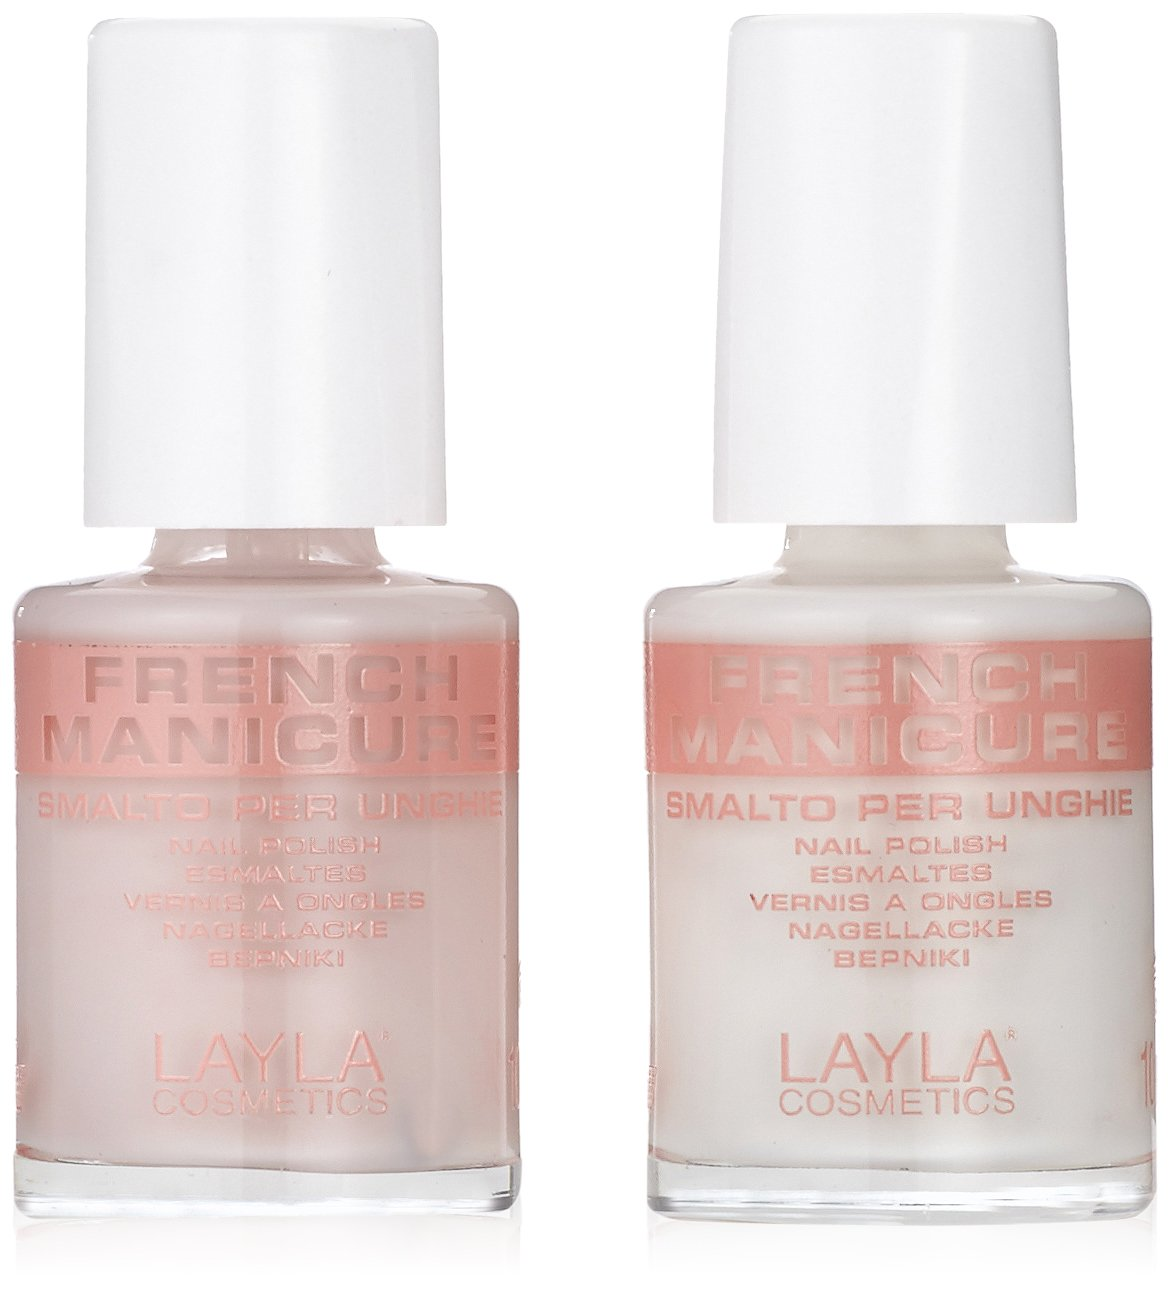 Layla Cosmetics Kit French Manicure - Naturale, primo pacchetto (1 x 0:01 l) Groupe Latitude 1858R26